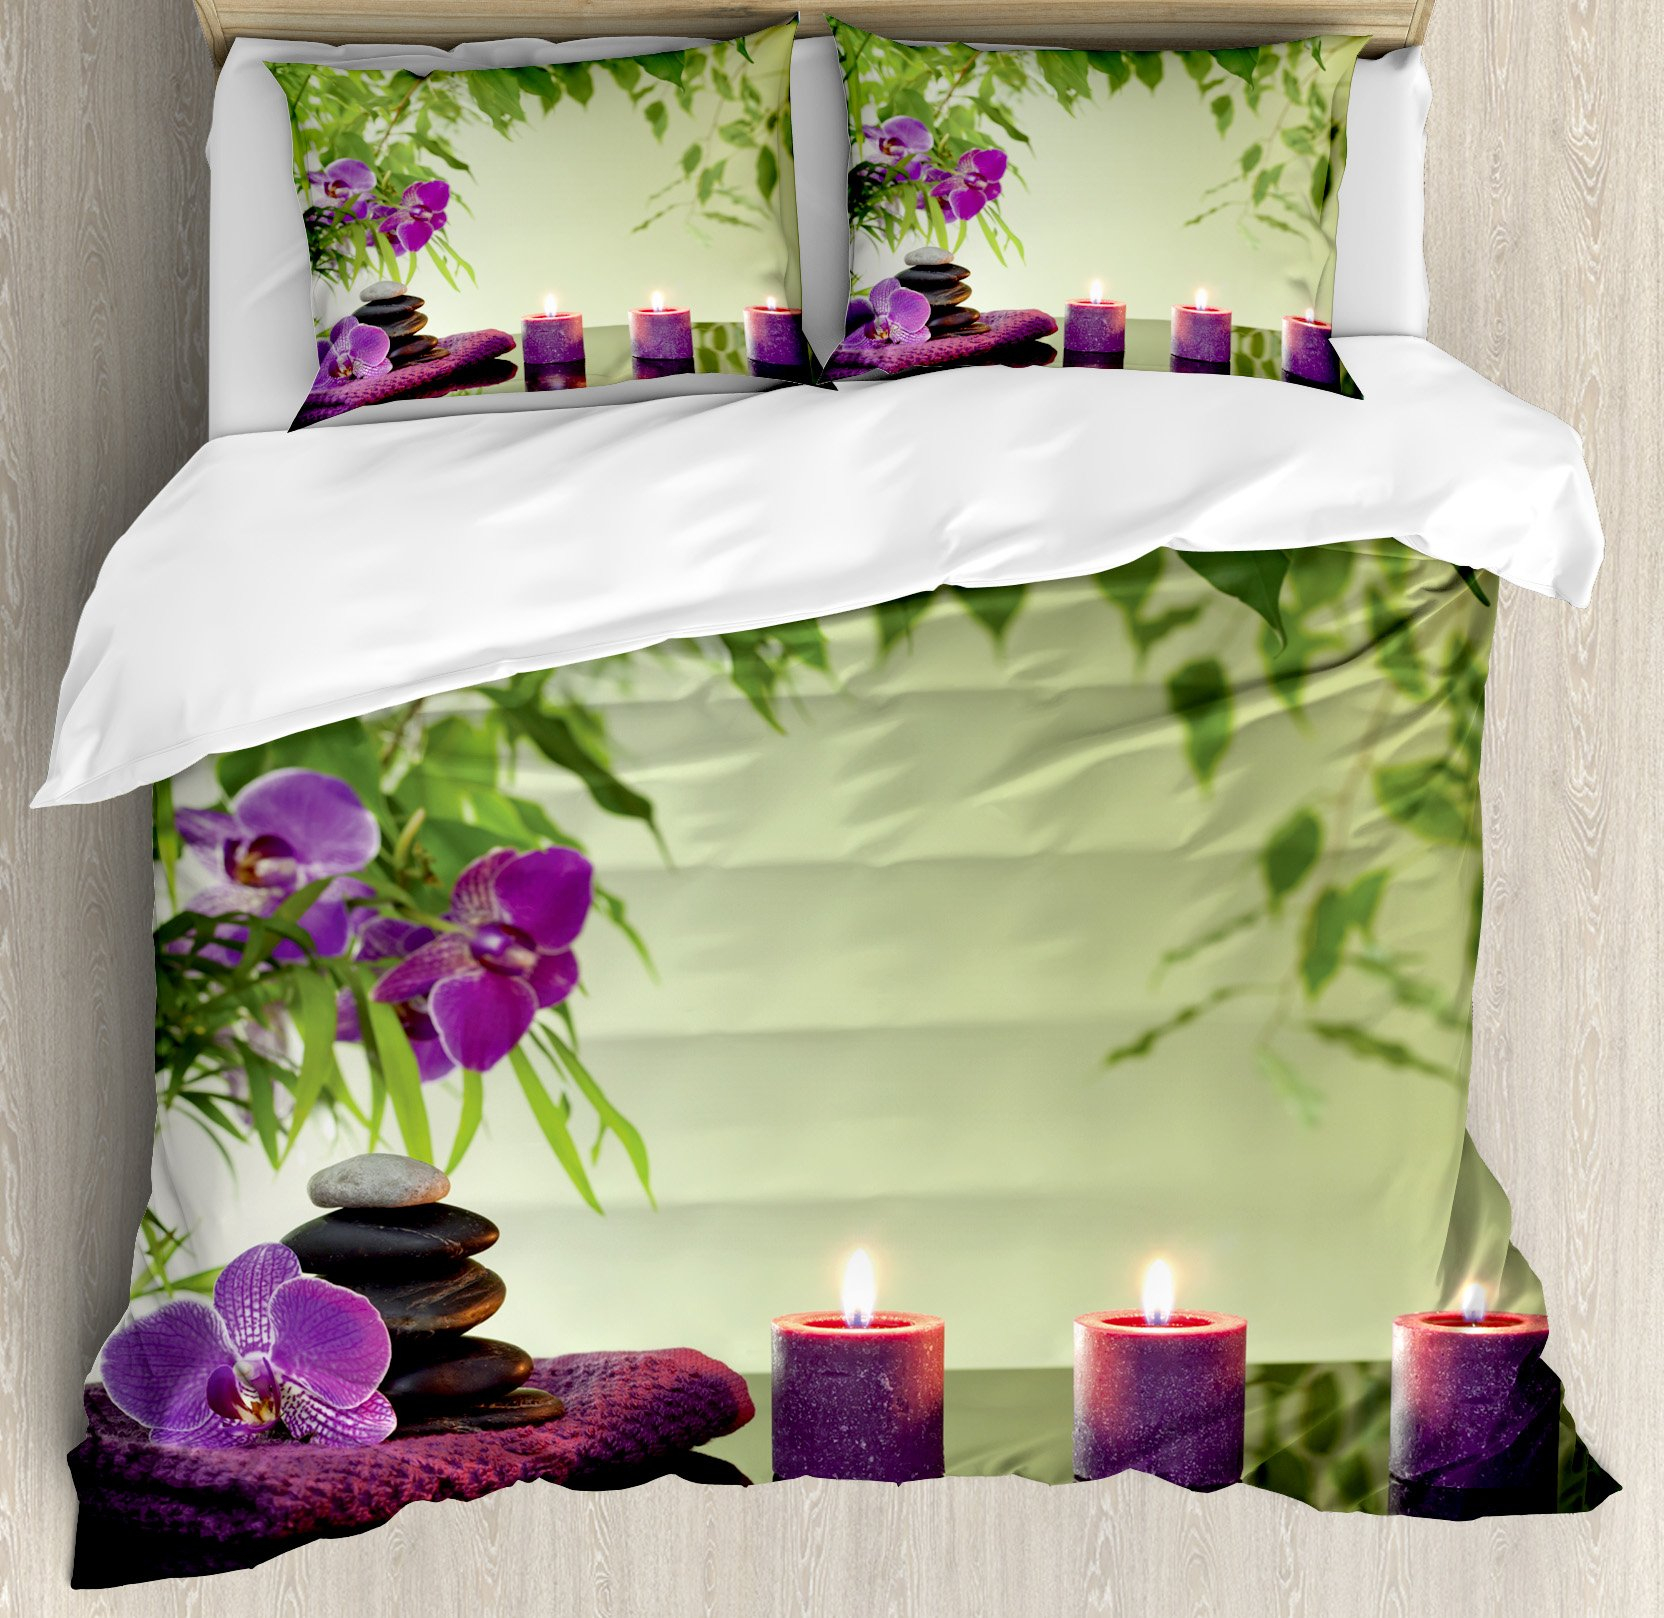 Spa Decor Duvet Cover Set King Size by Ambesonne, Zen Stones Aromatic Candles and Orchids Blooms Treatment Vacation, Decorative 3 Piece Bedding Set with 2 Pillow Shams by Ambesonne (Image #1)